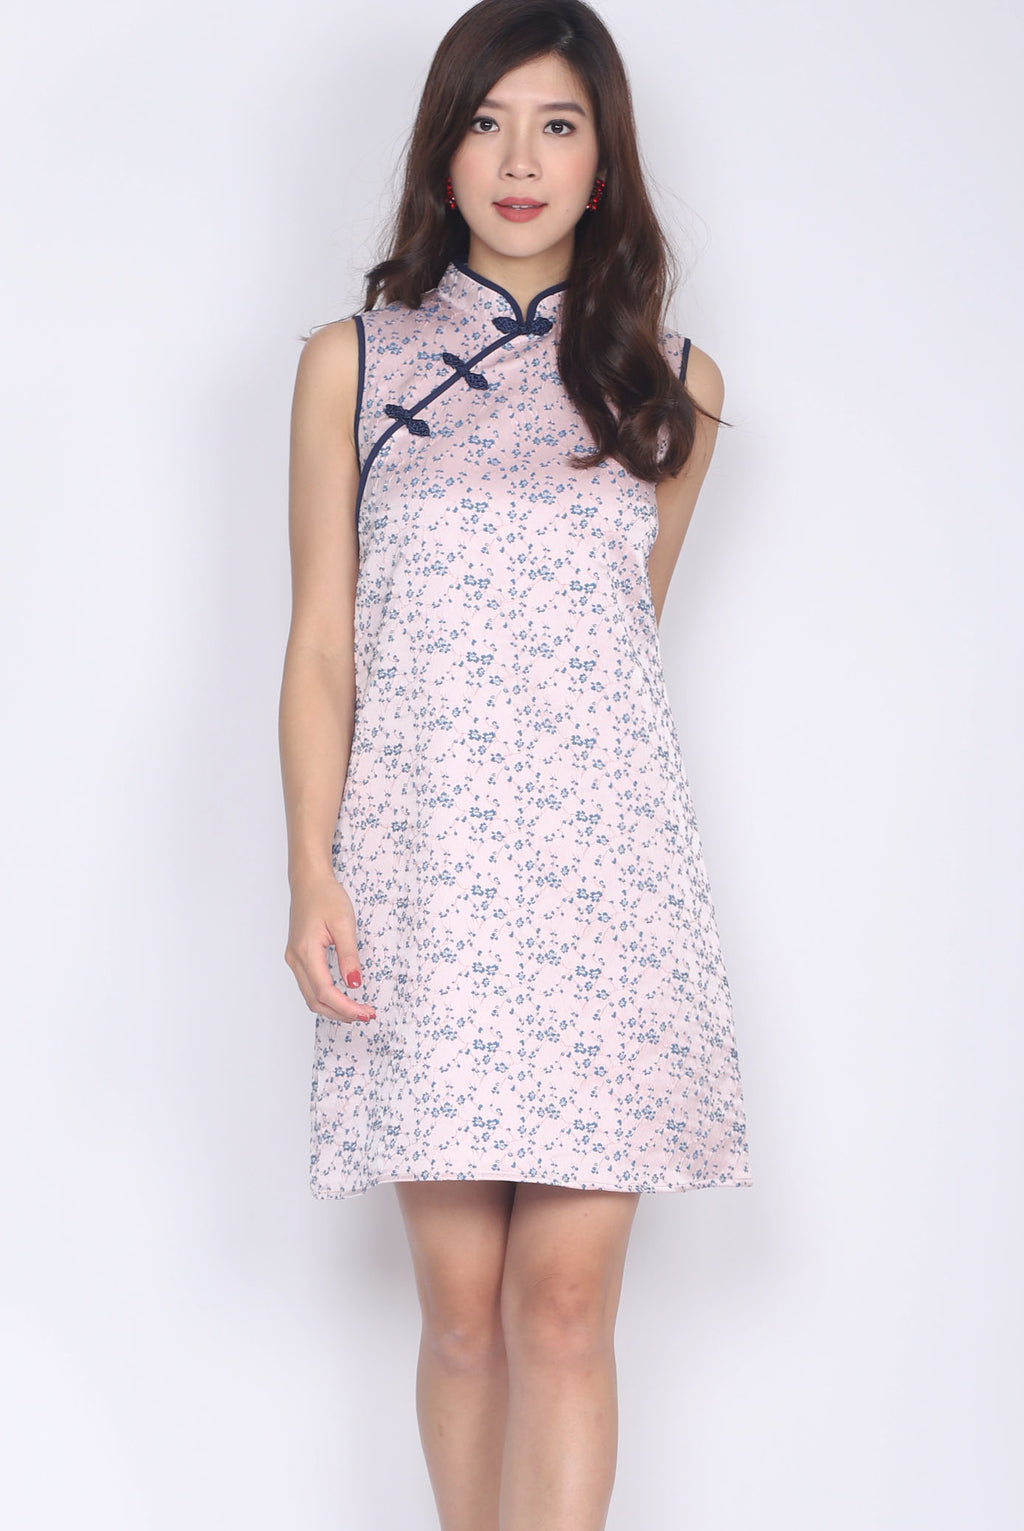 Mieth Oriental Texture Cheong Sam Dress In Pink/Navy